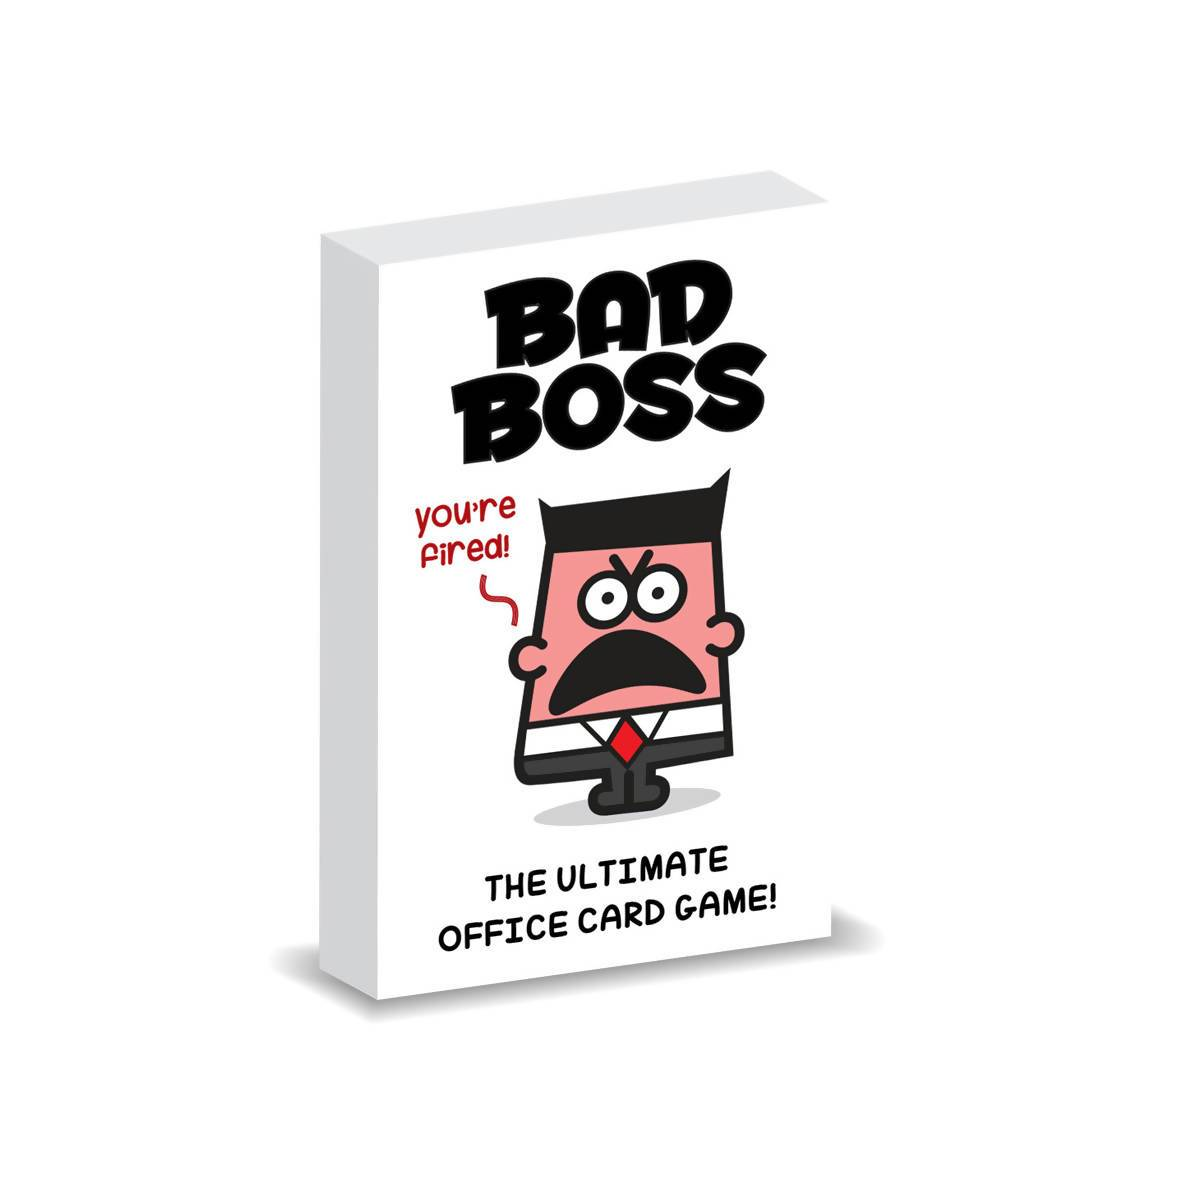 Bad Boss Card Game - New Arrivals - Zigzagme - Naiise